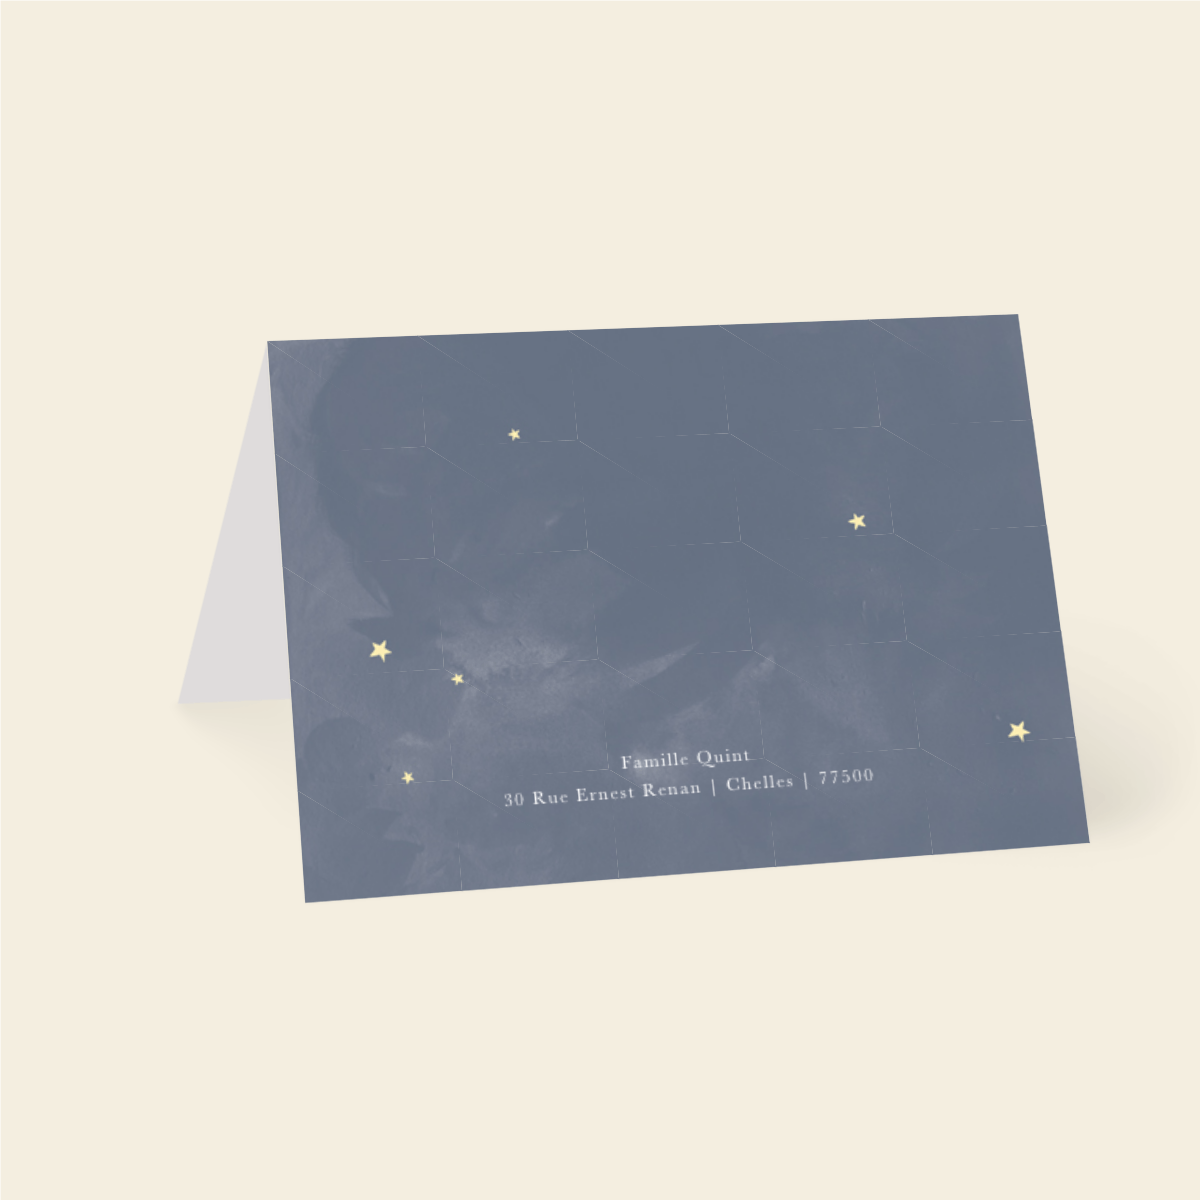 Https%3a%2f%2fwww.papier.com%2fproduct image%2f74684%2f48%2fsleeping moon 17513 arriere 1560197167.png?ixlib=rb 1.1